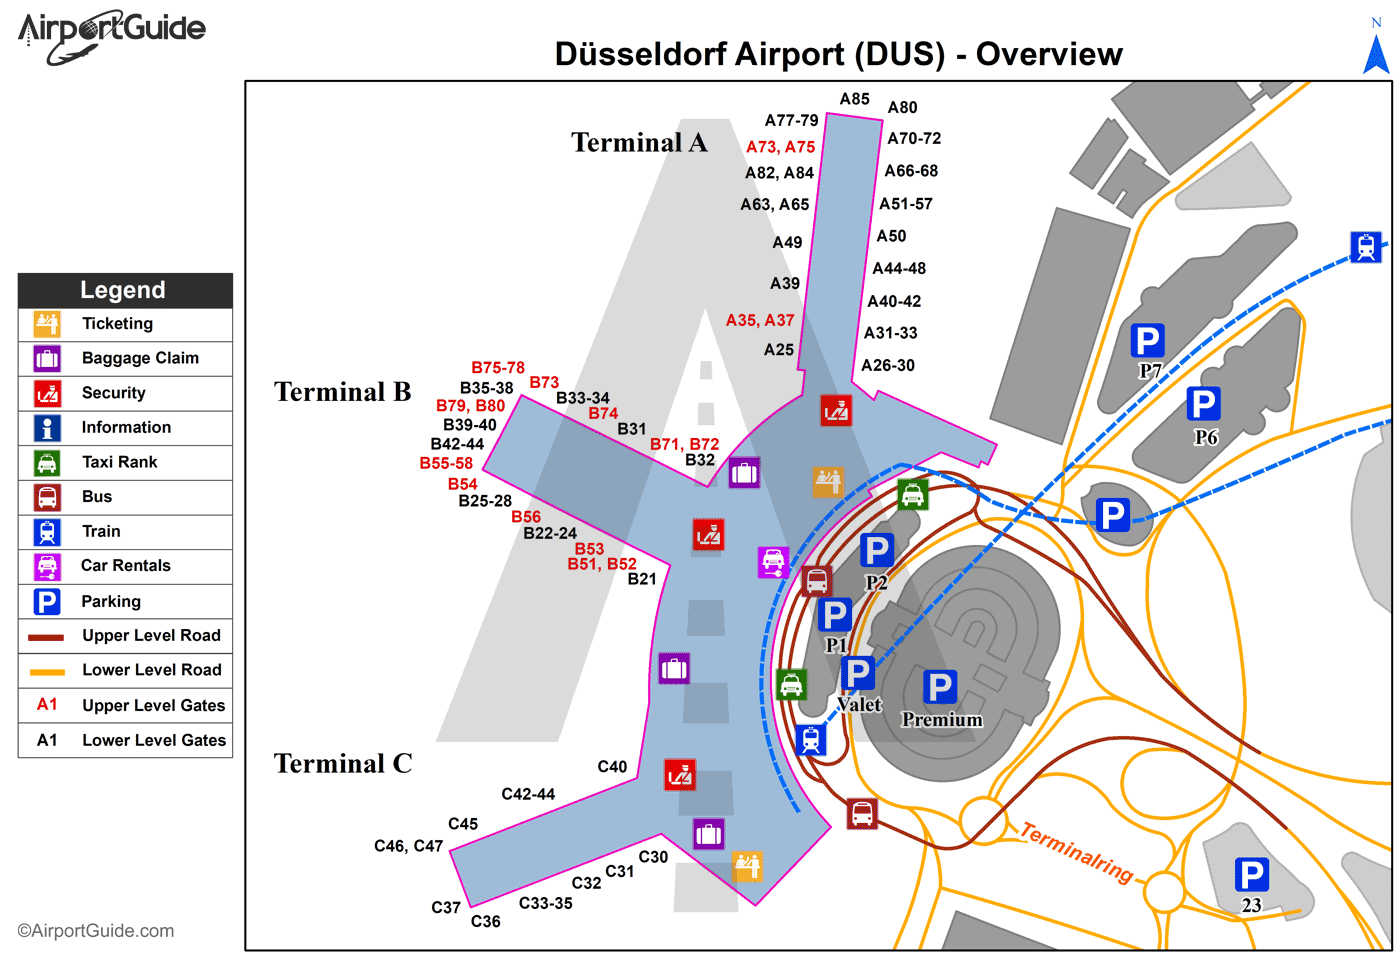 Düsseldorf - Düsseldorf International (DUS) Airport Terminal Map - Overview